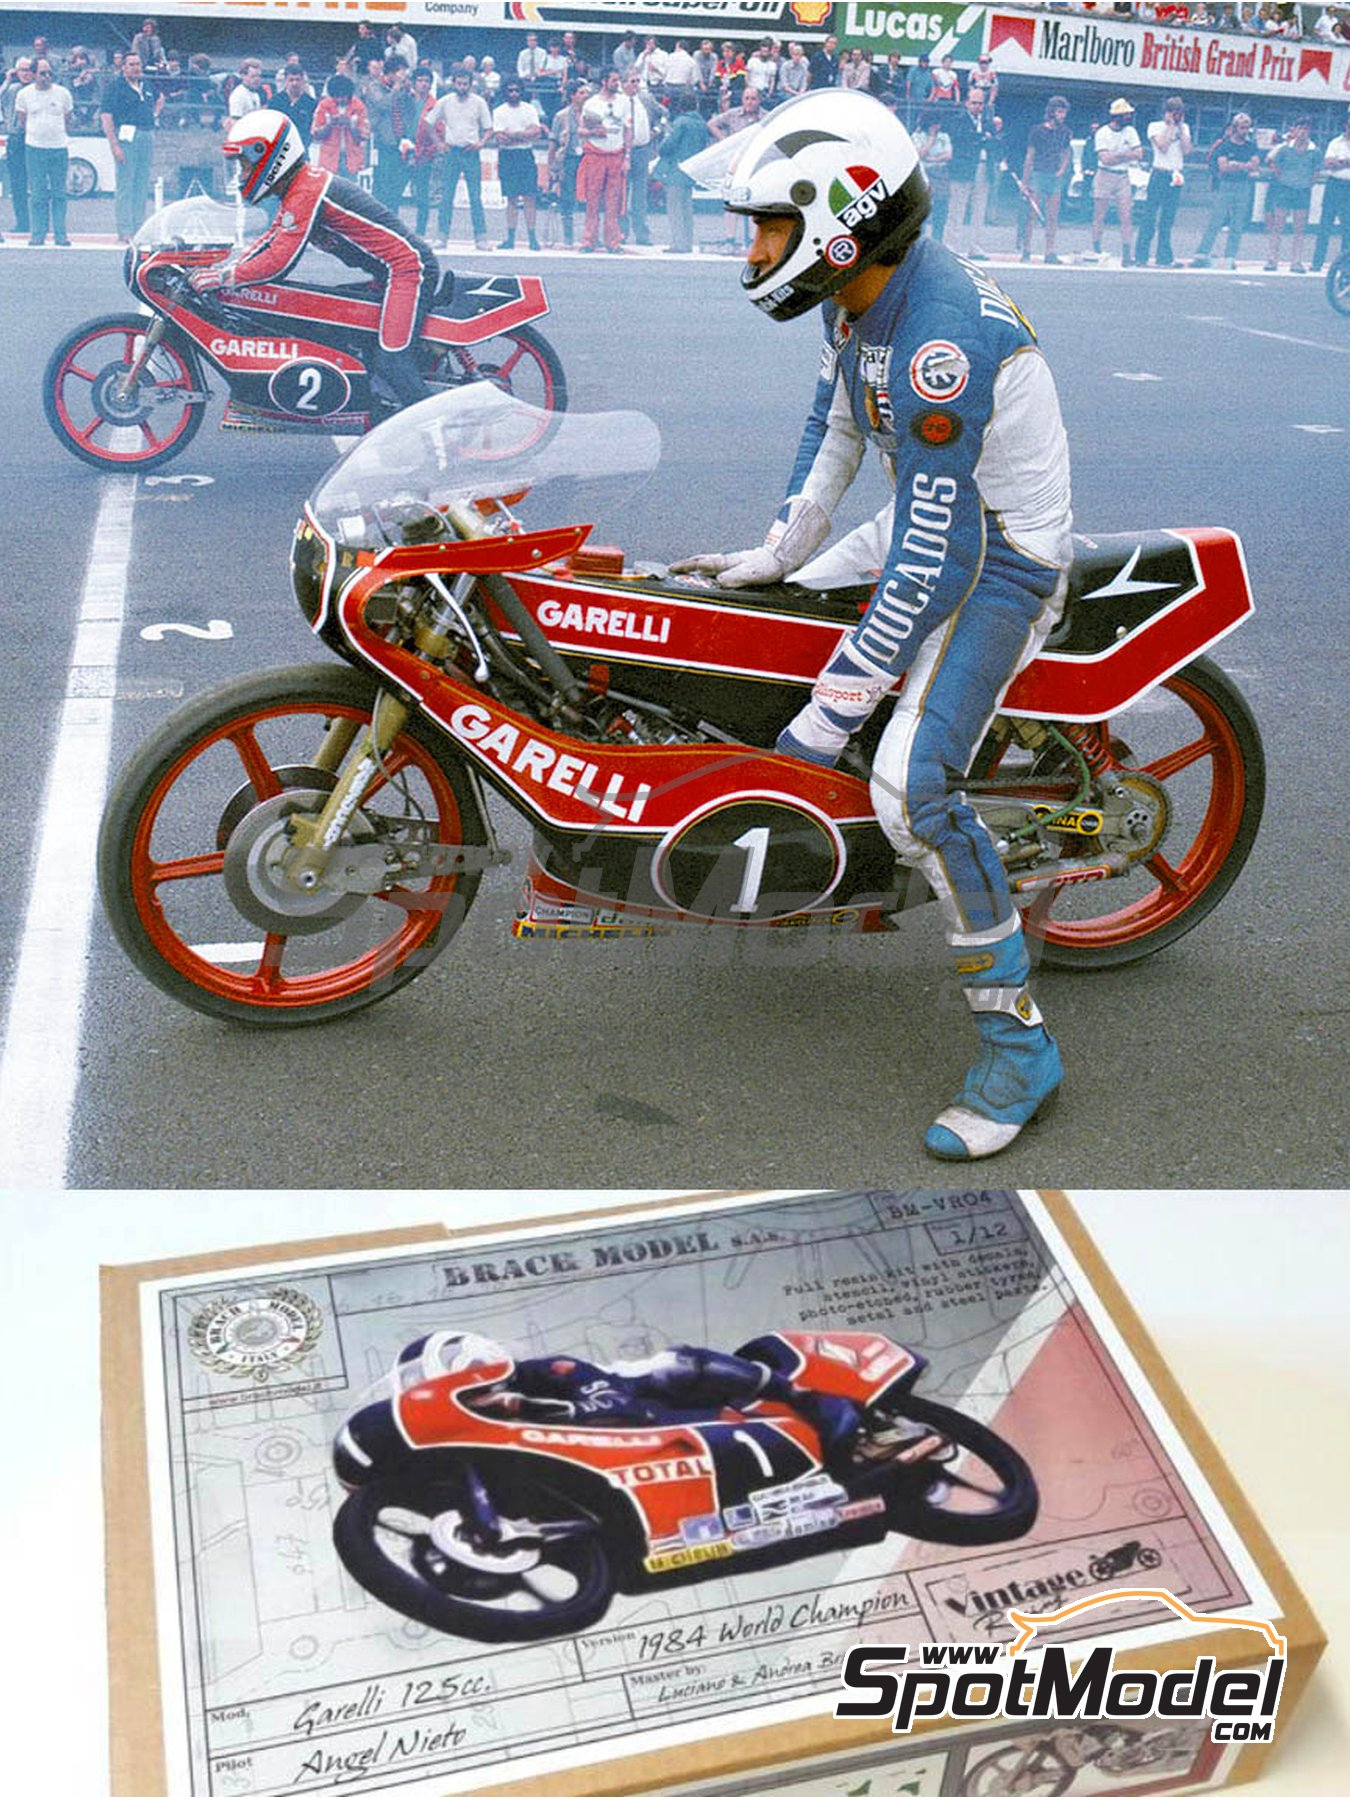 Garelli 125cc - Motorcycle World Championship 1984 | Model bike kit in 1/12 scale manufactured by Brach Model (ref. BM-VR04) image